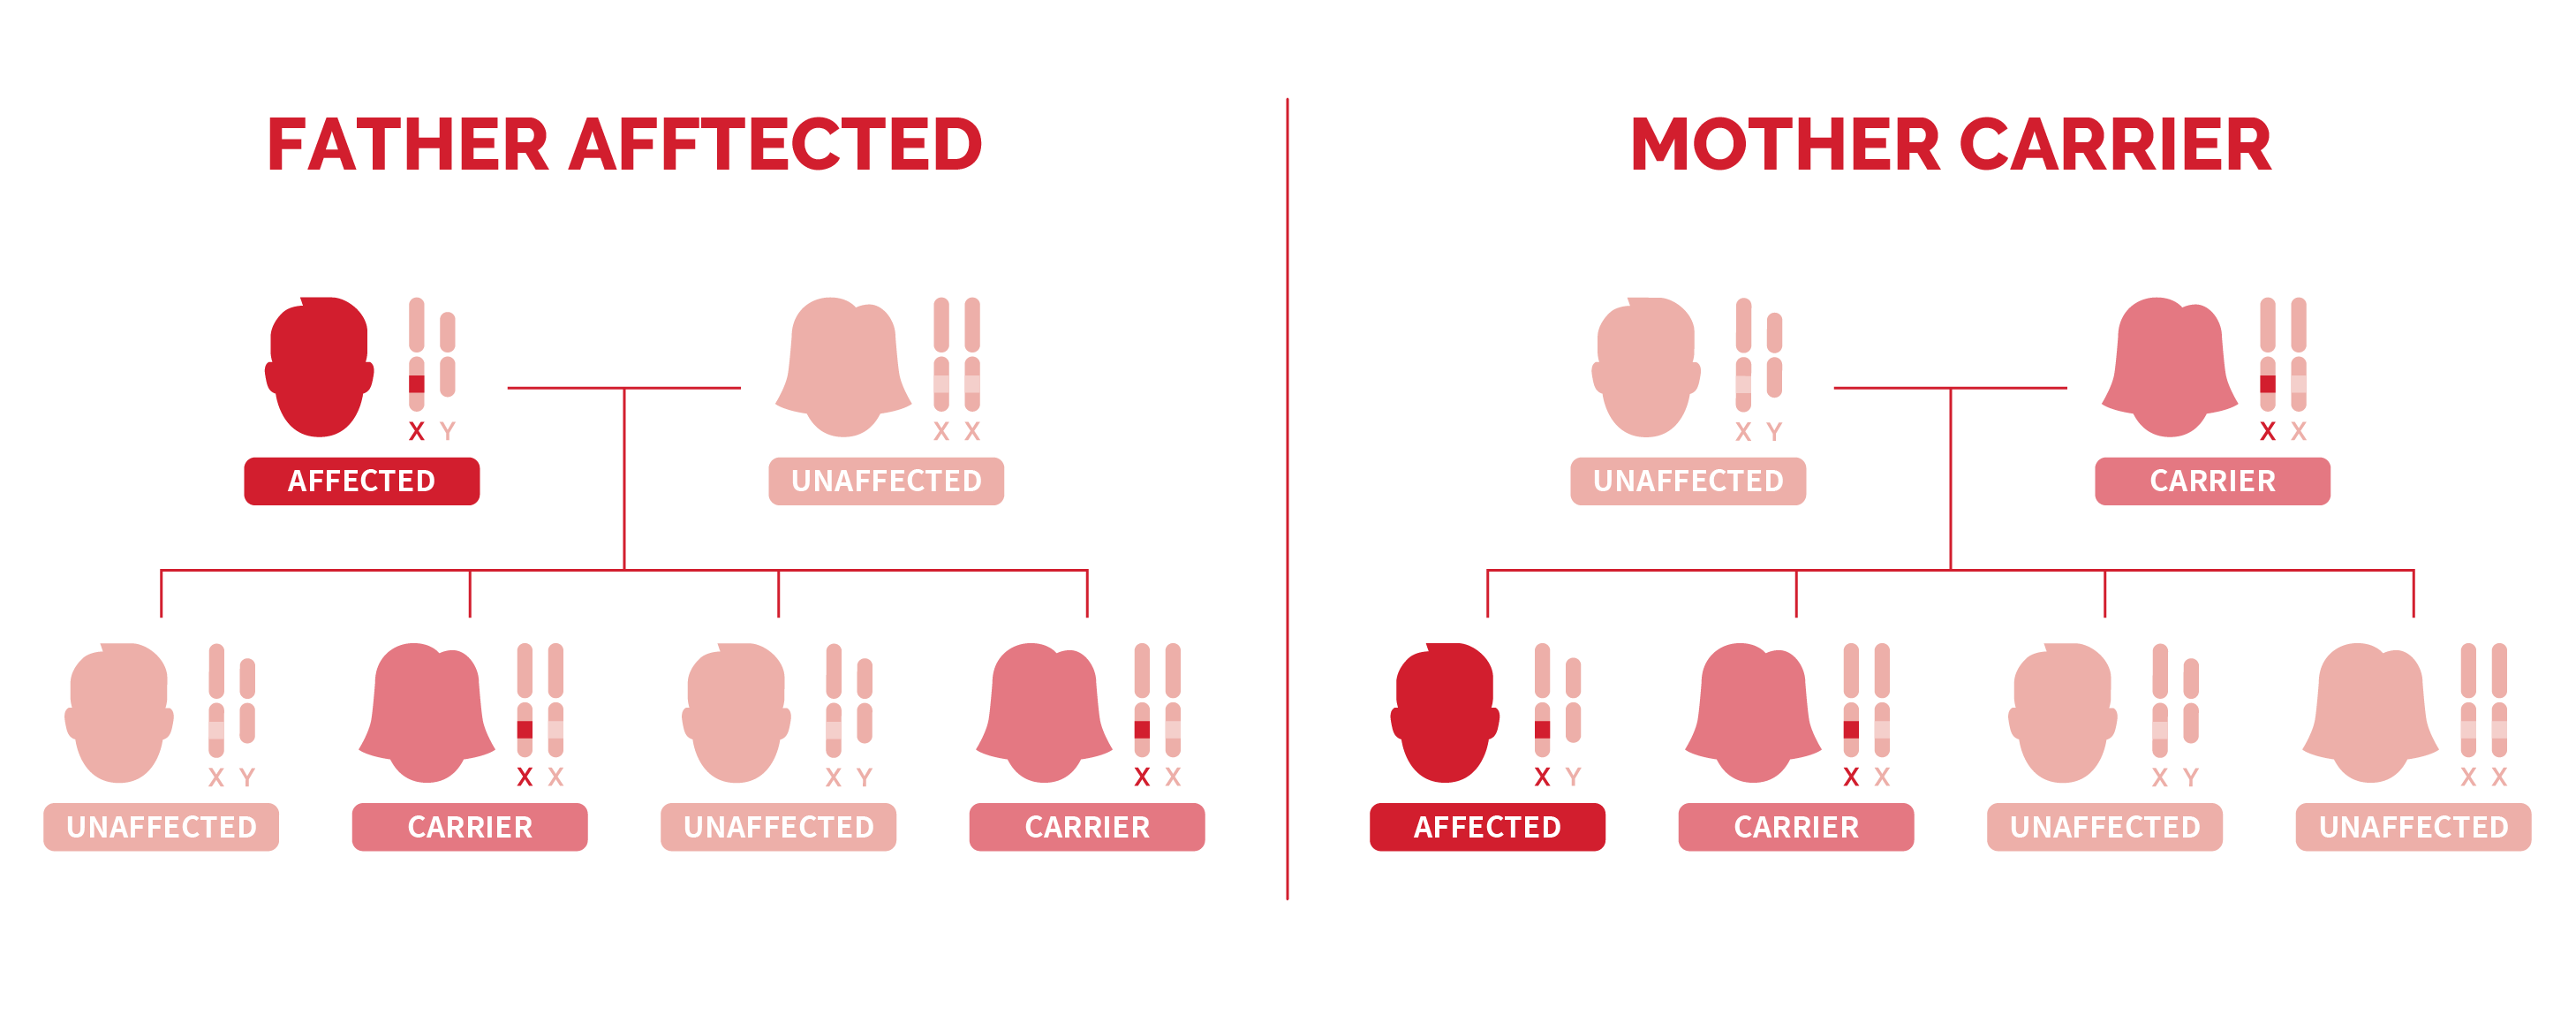 Two family trees showing the X-linked inheritance pattern of hemophilia in each case of parents affected.